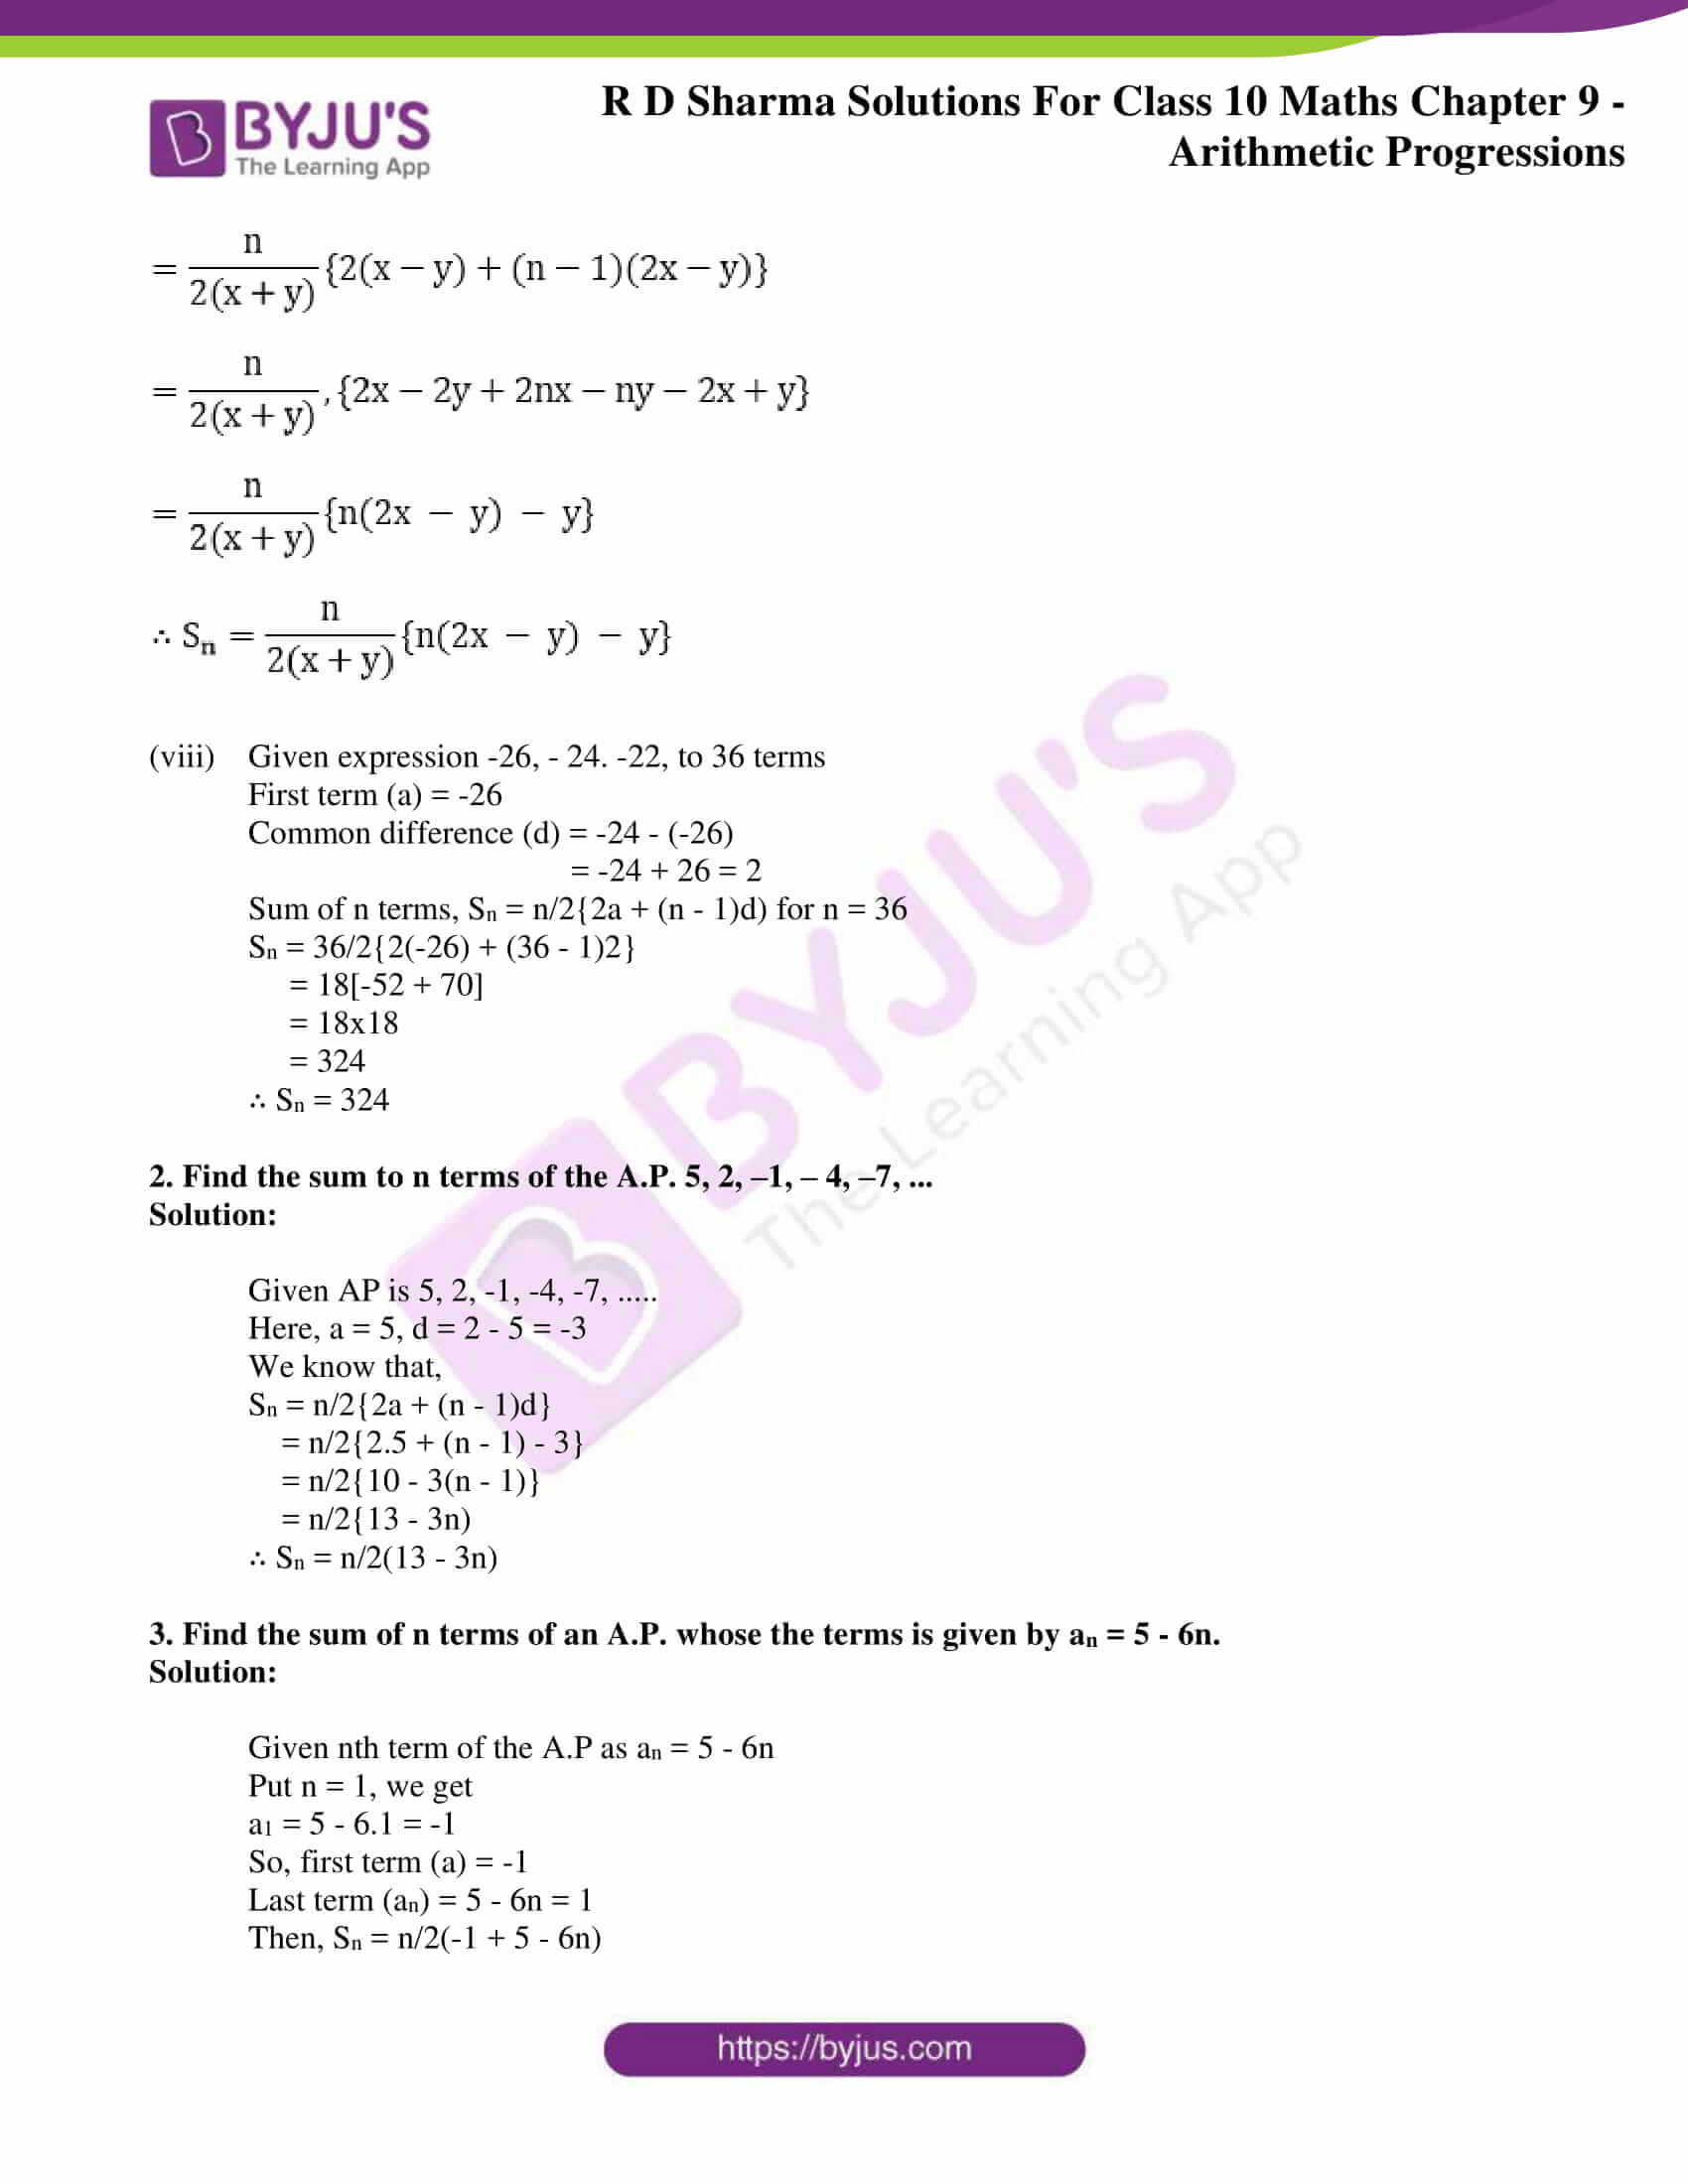 rd sharma solutions for class 10 chapter 9